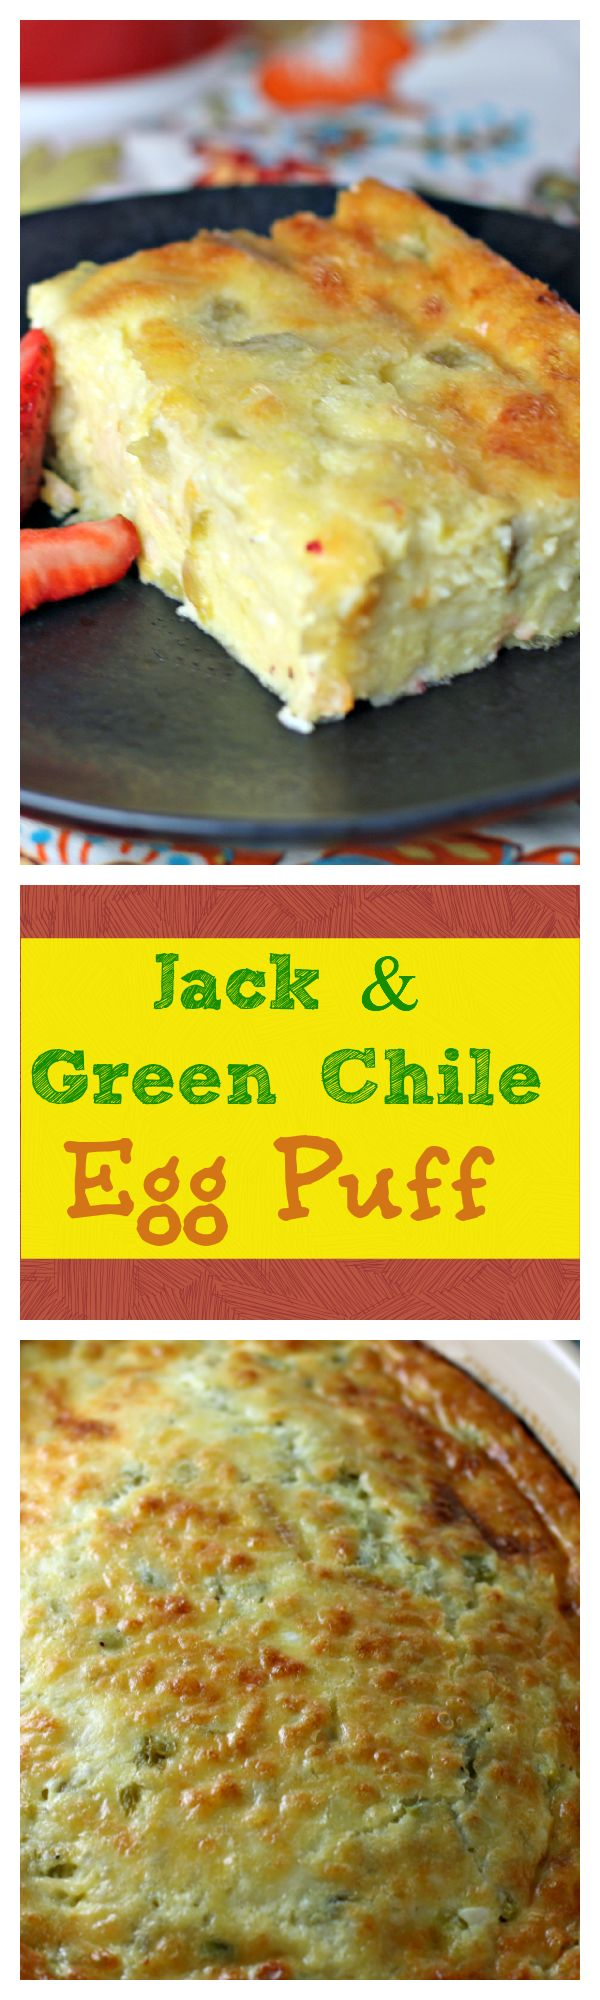 Quick and easy Jack & Green Chile Egg Puff has incredible flavor with fire roasted green chilies, cottage cheese for texture and gooey Jack cheese melted throughout. From CulinaryEnvy.com